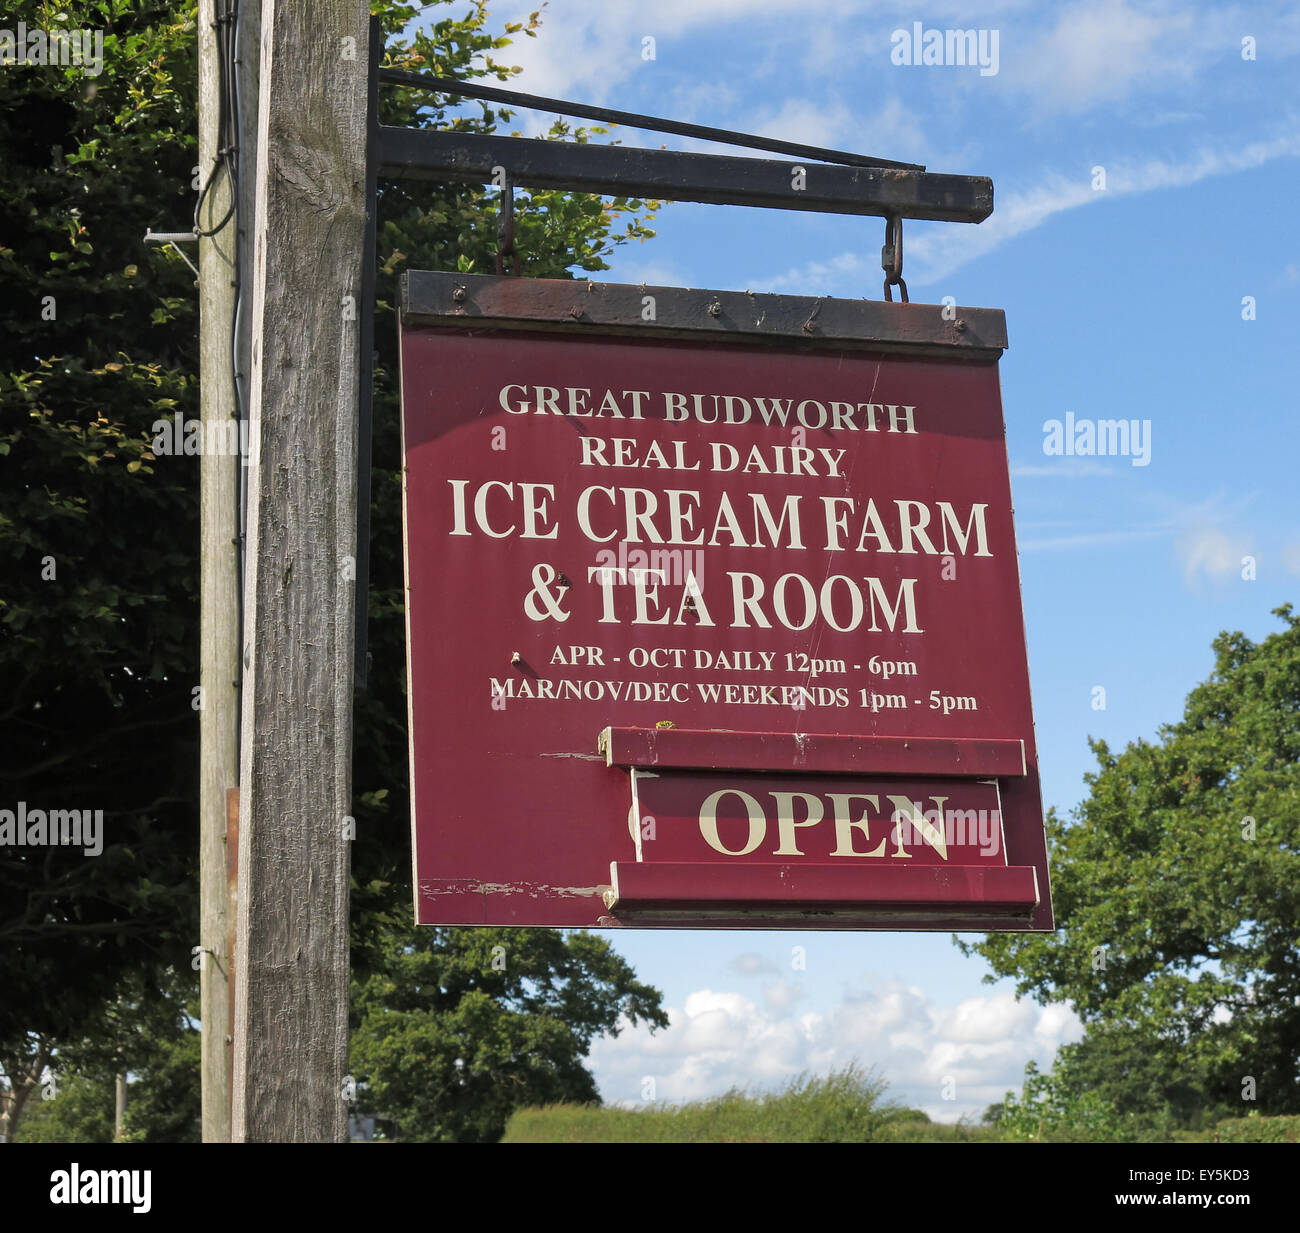 Cheshire Ice Cream Farm and Tea Room Open Sign - Stock Image